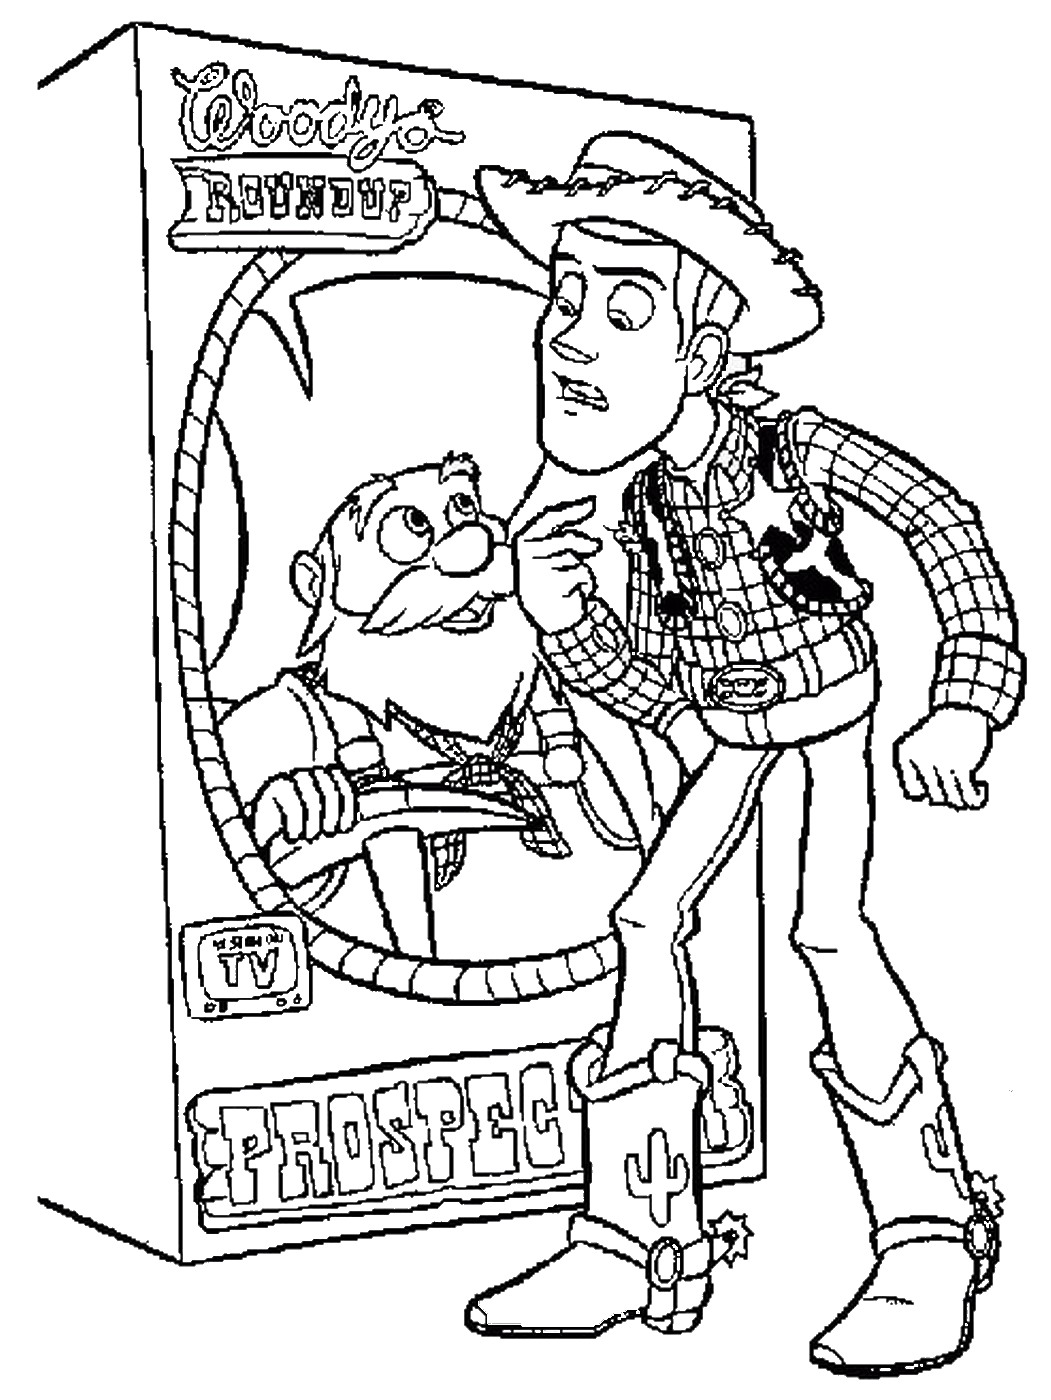 toy story coloring toy story coloring pages story coloring toy 1 1